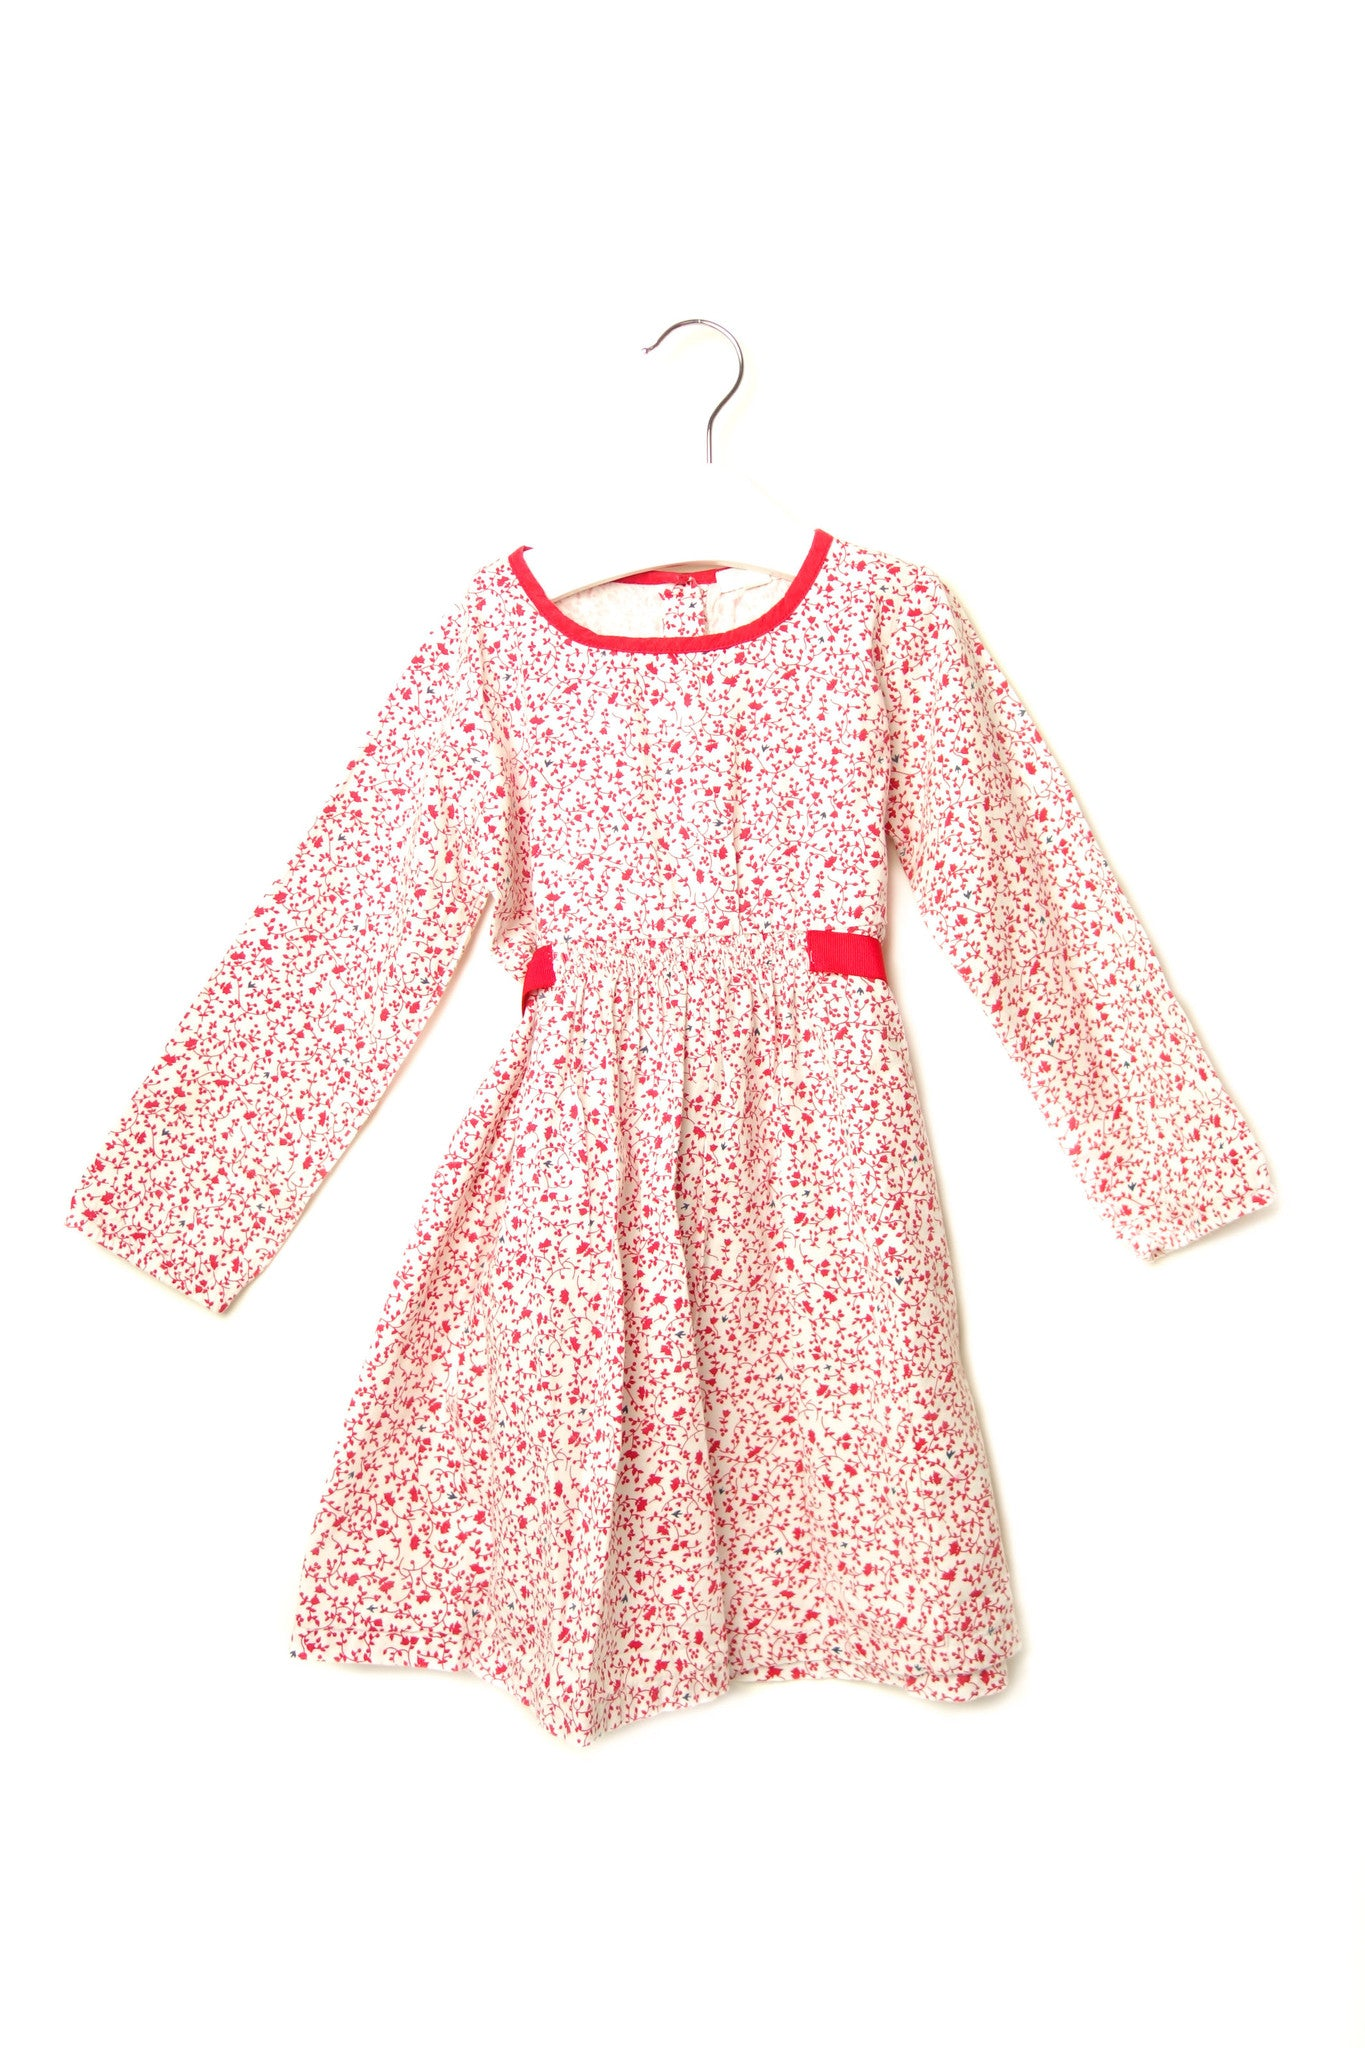 10001716 Purebaby Kids~Dress 2-3T at Retykle